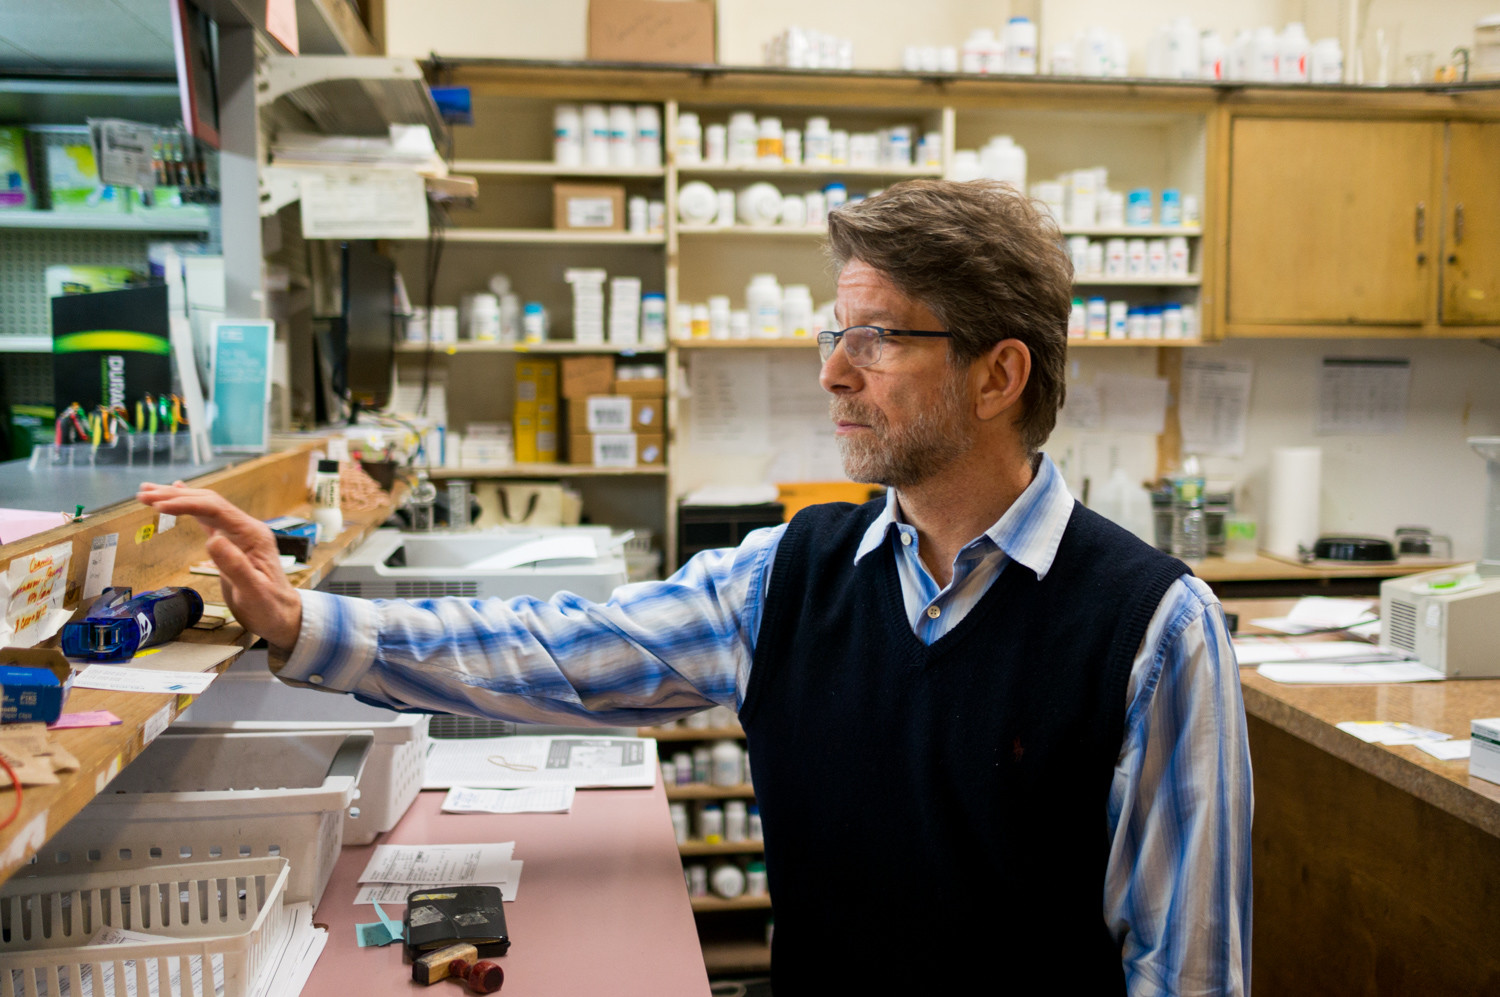 Robert Newman, a pharmacist at Regal Pharmacy, talks with customers. His landline and internet service have been cutting out, which has had a negative impact on business, severely hindering the process of delivering medications to customers. Verizon, he says, has been slow to respond.